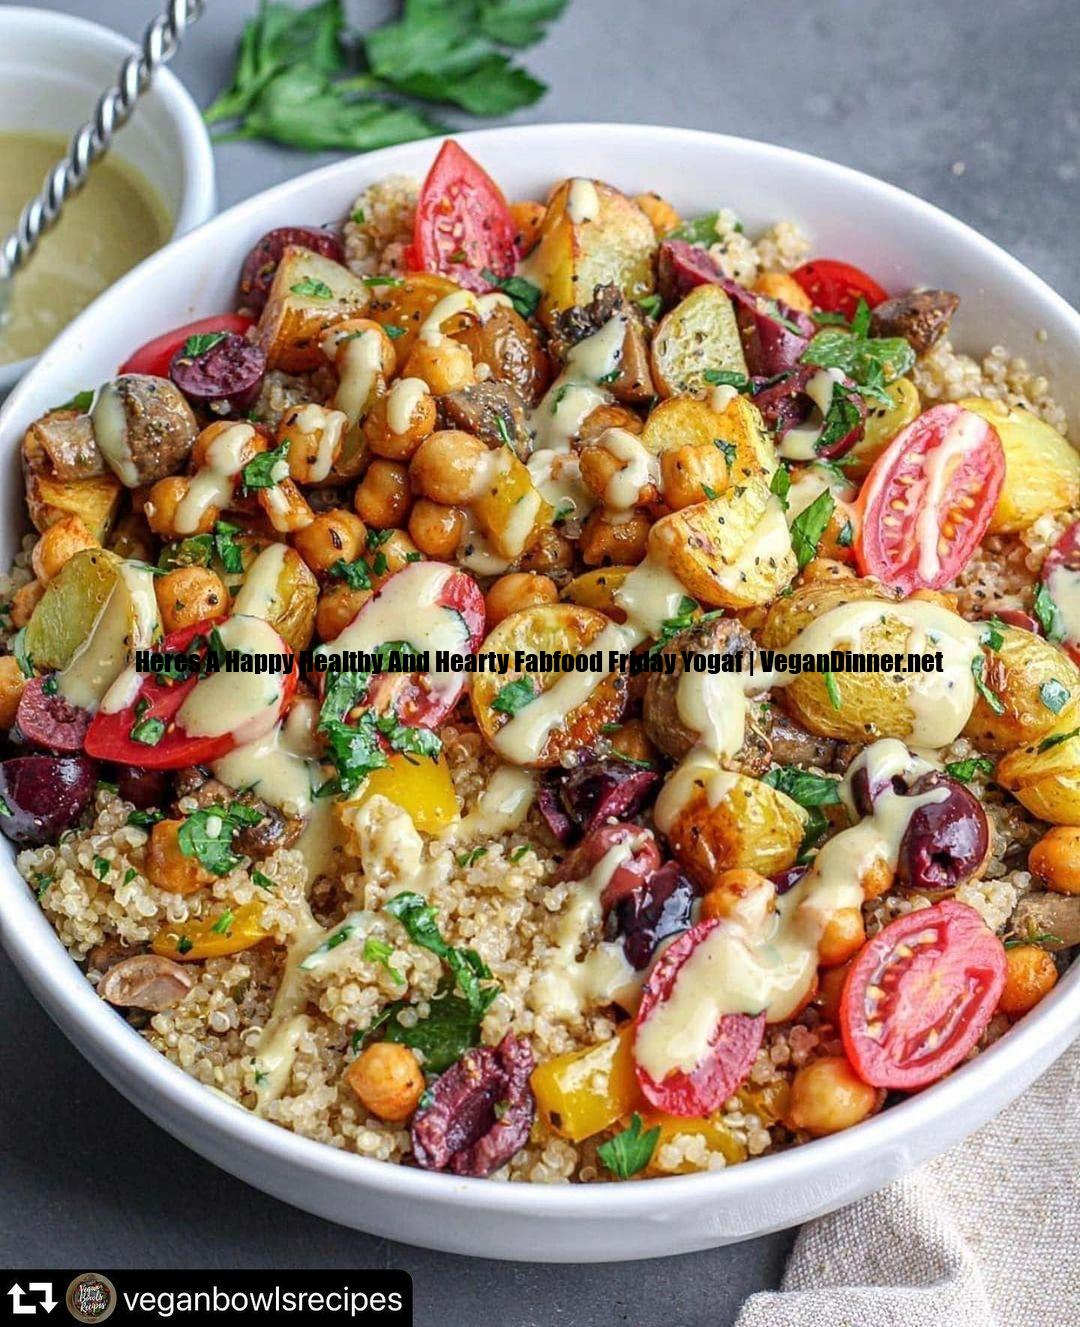 heres a happy healthy and hearty fabfood friday yogaf display image fe